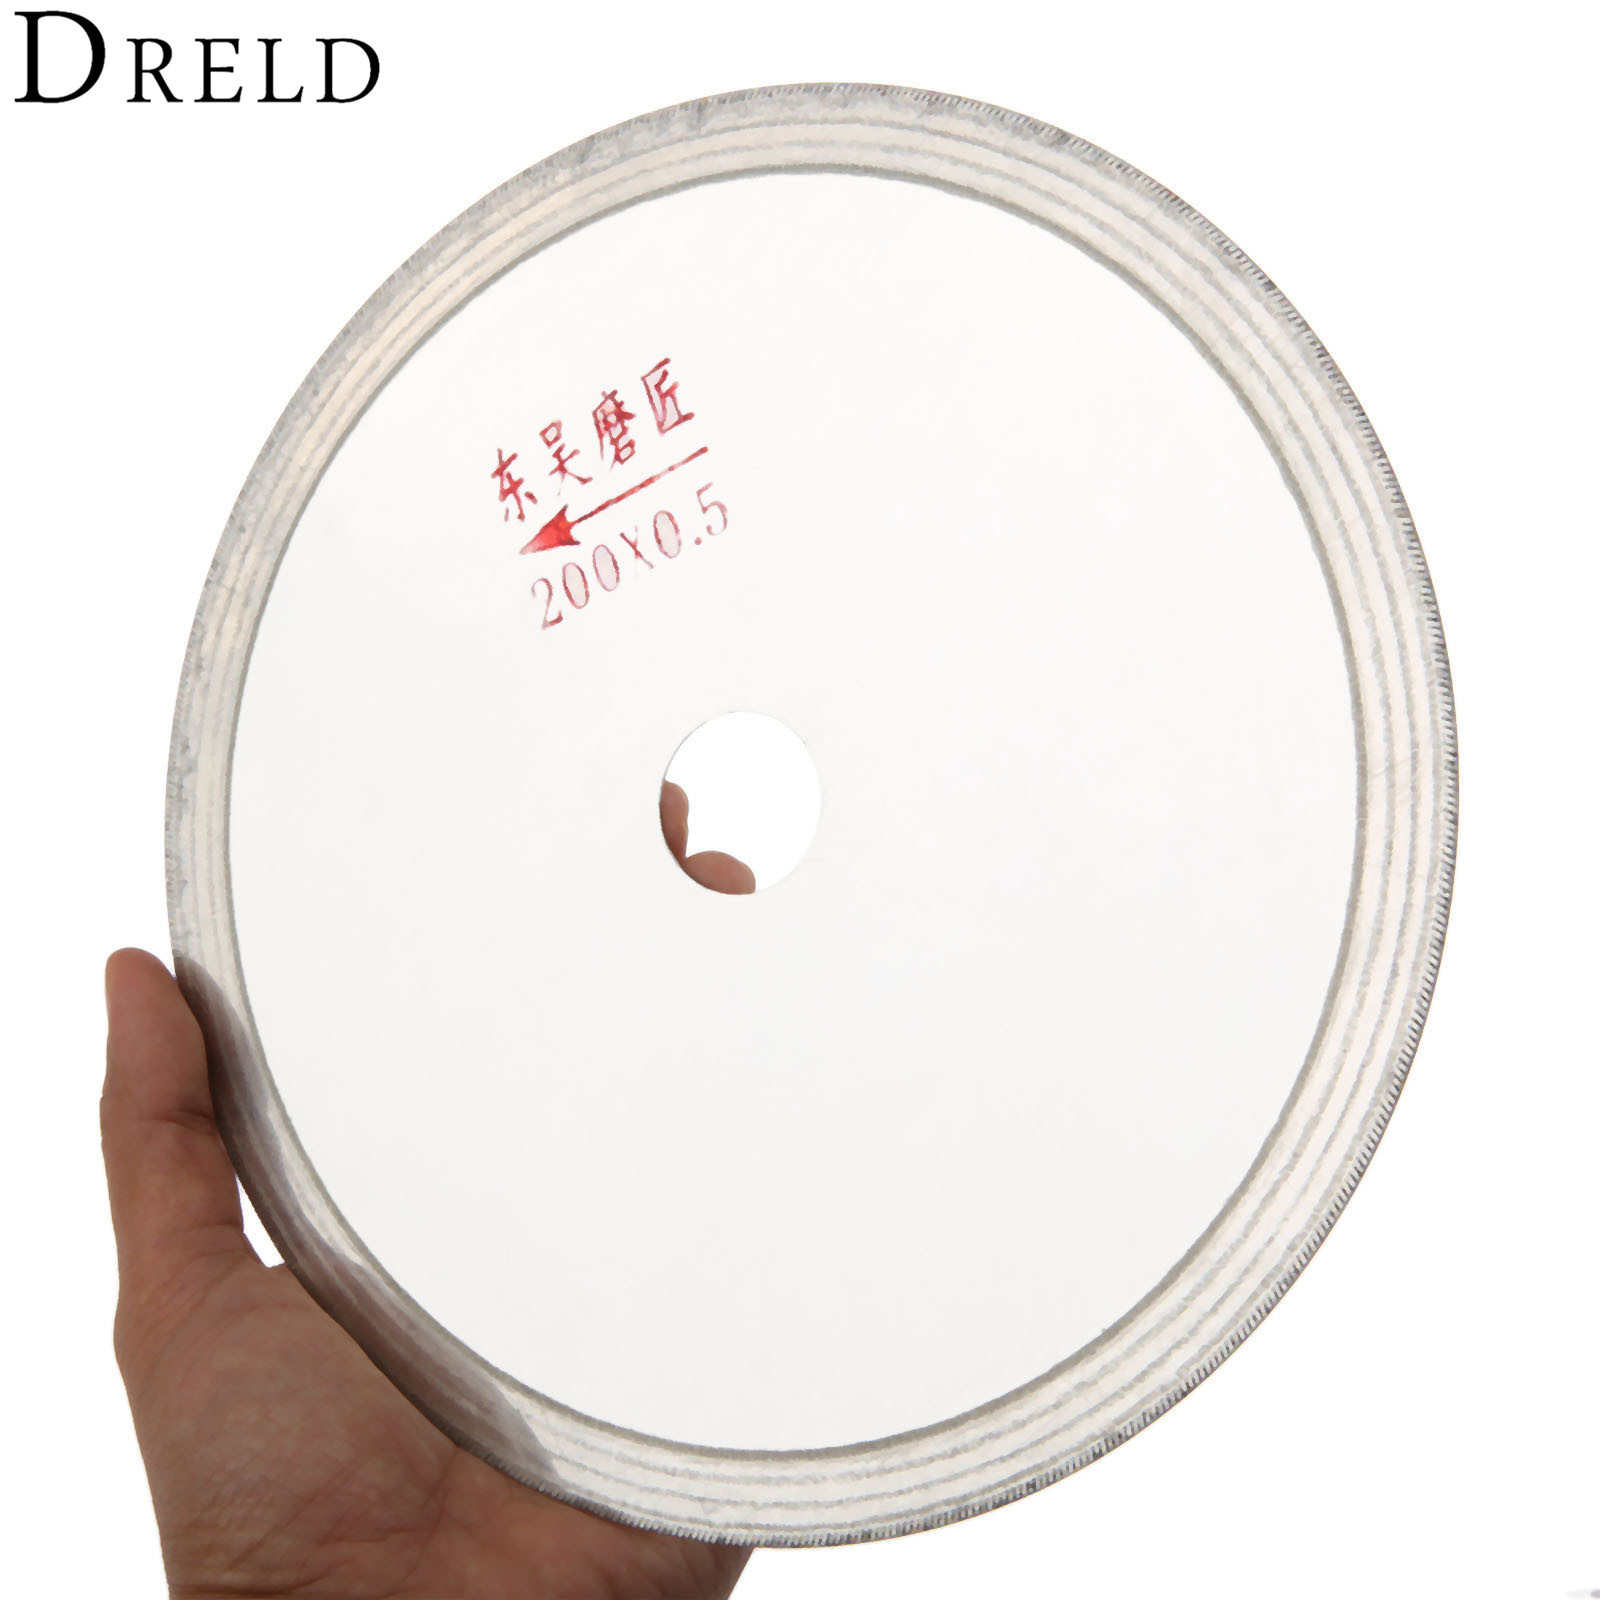 DRELD 200mm 8 Inch Dremel Accessories Ultra-thin Diamond Saw Blades Turquoise Cutting Disc Grinding Wheel For Rotary Tools